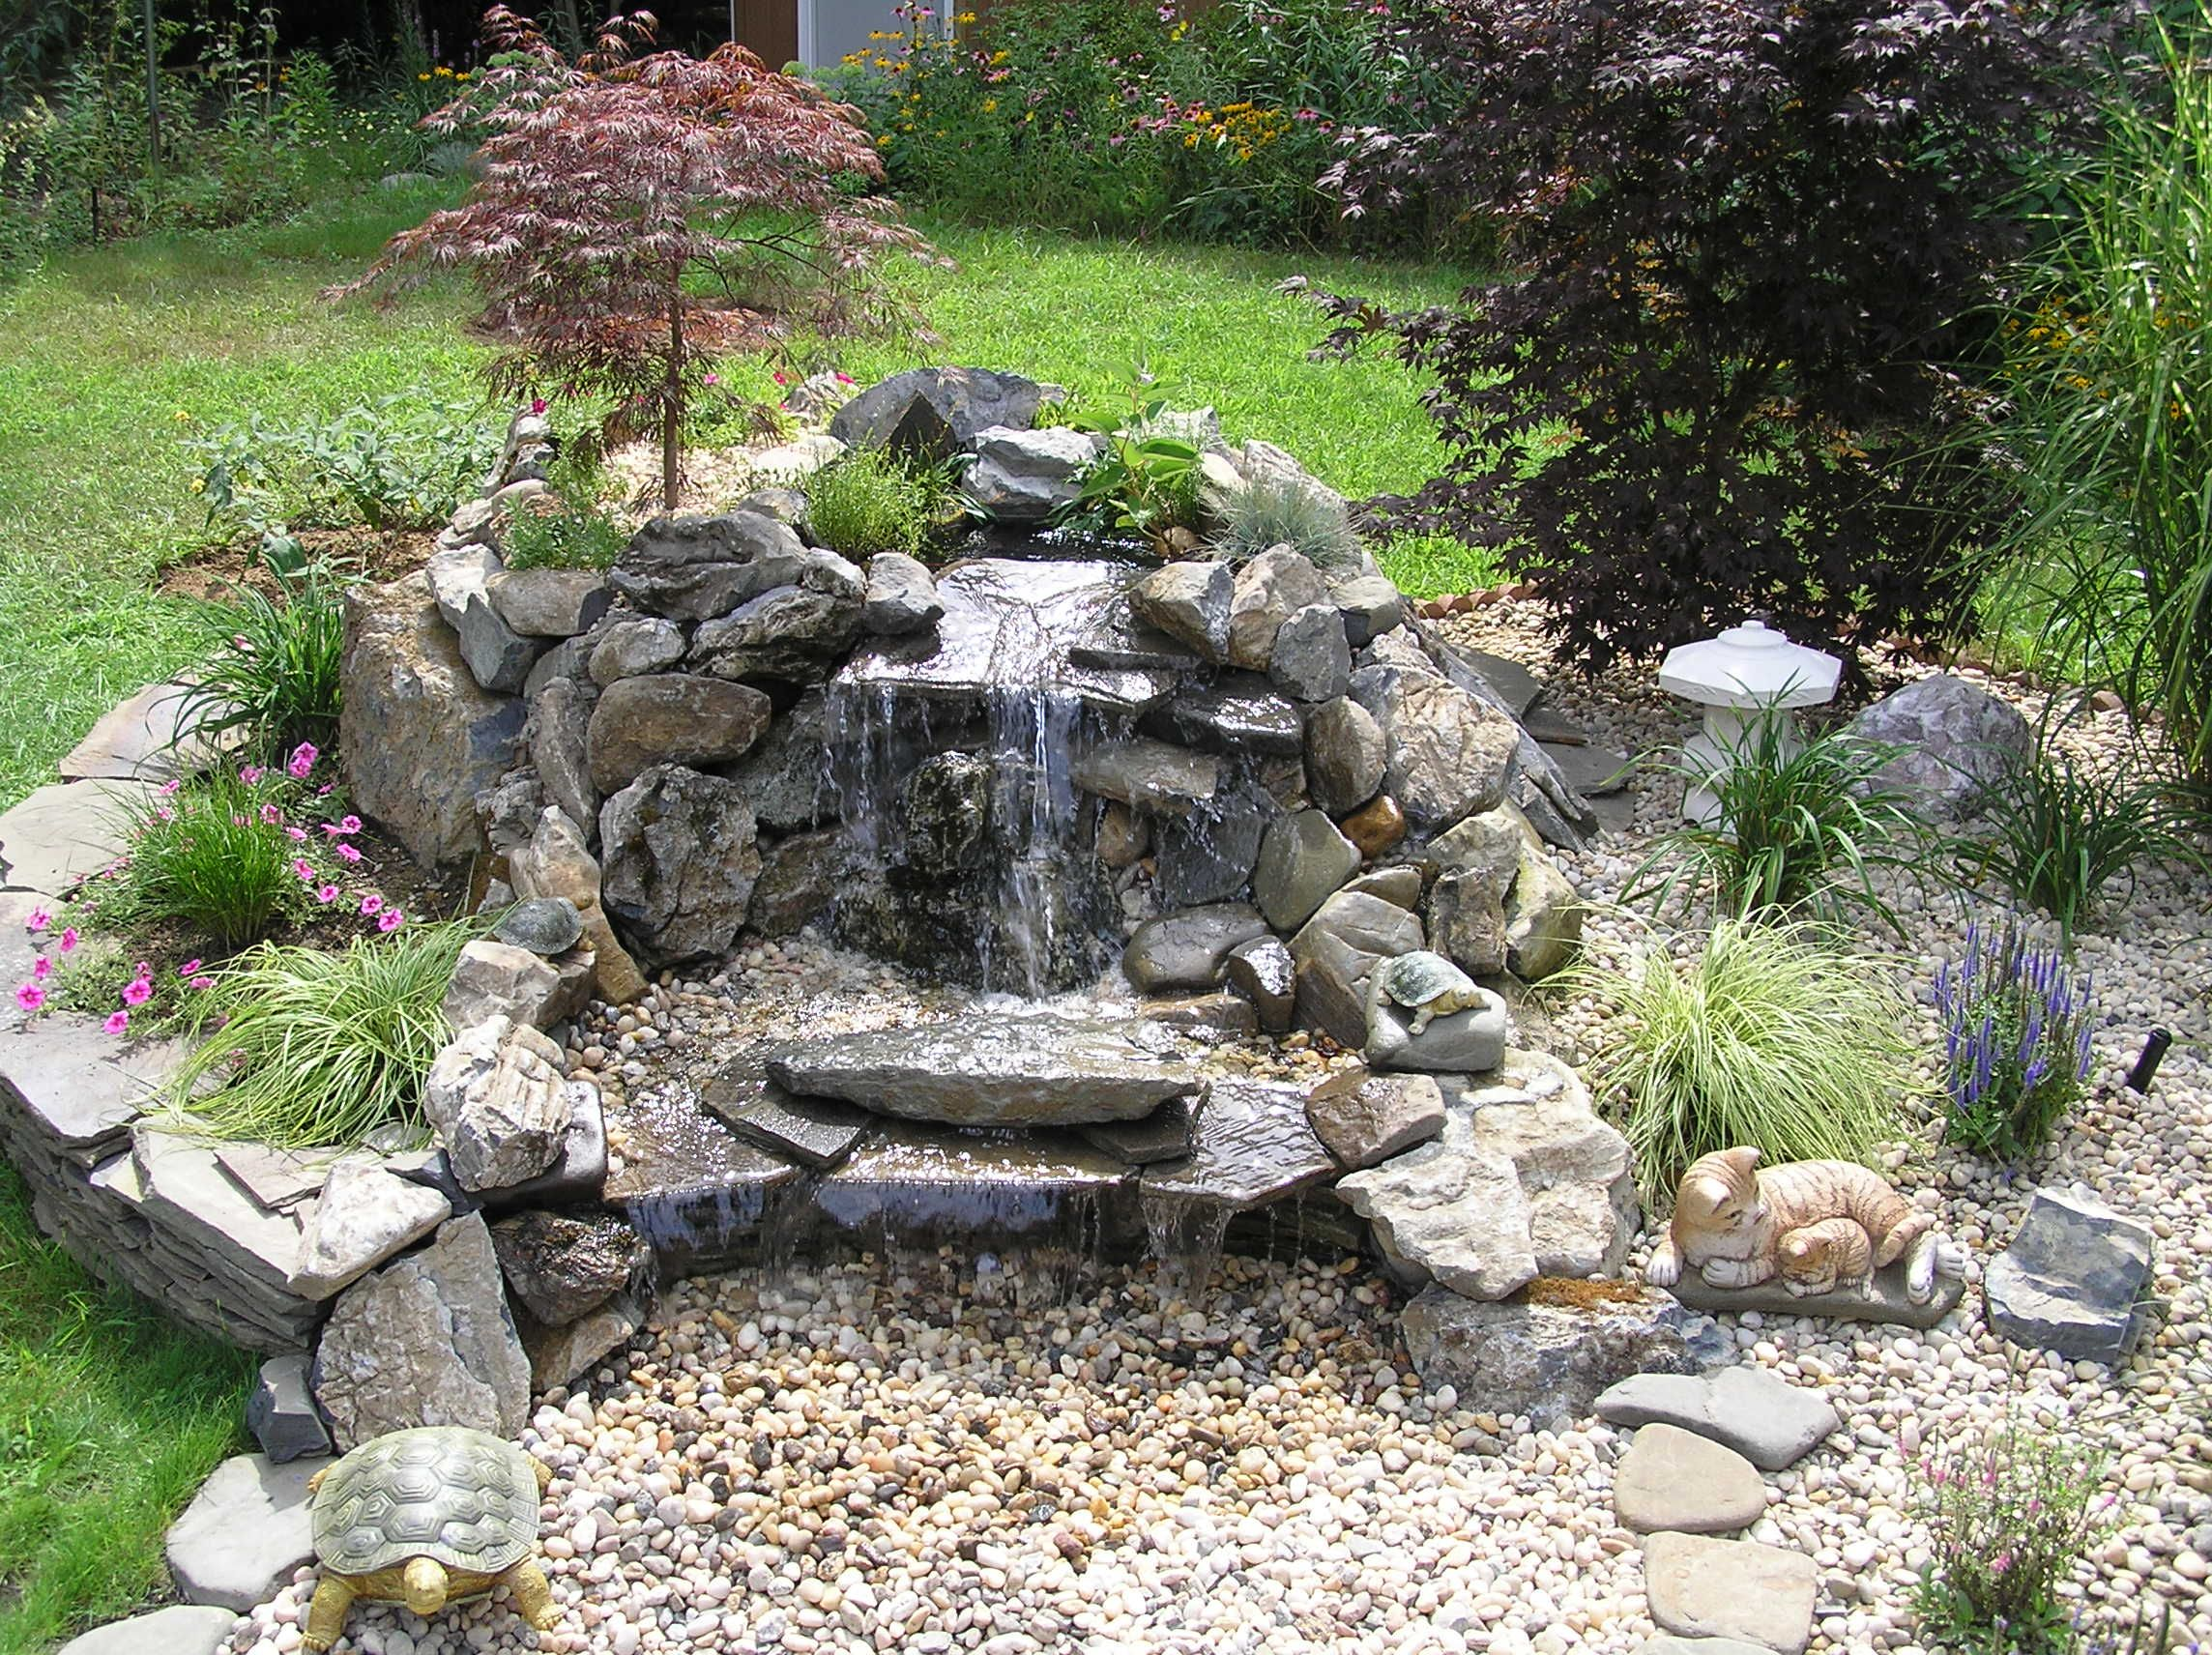 Download full size image bar design backyard waterfalls for Garden pond waterfall ideas